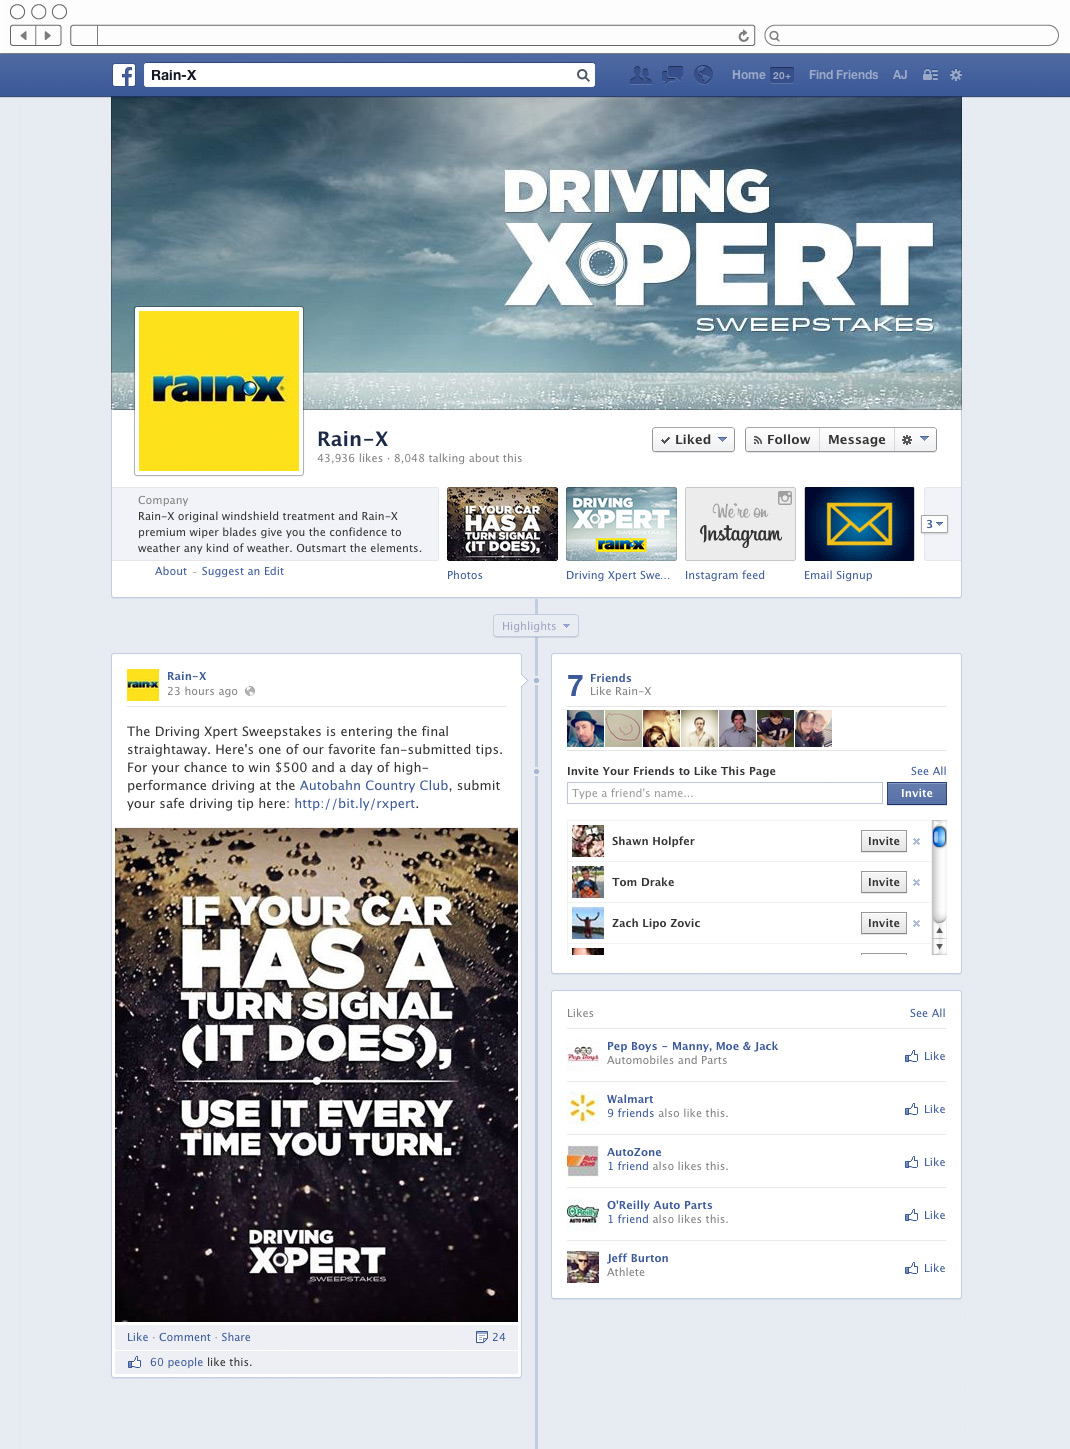 Rain-X Facebook timeline page with driving tip